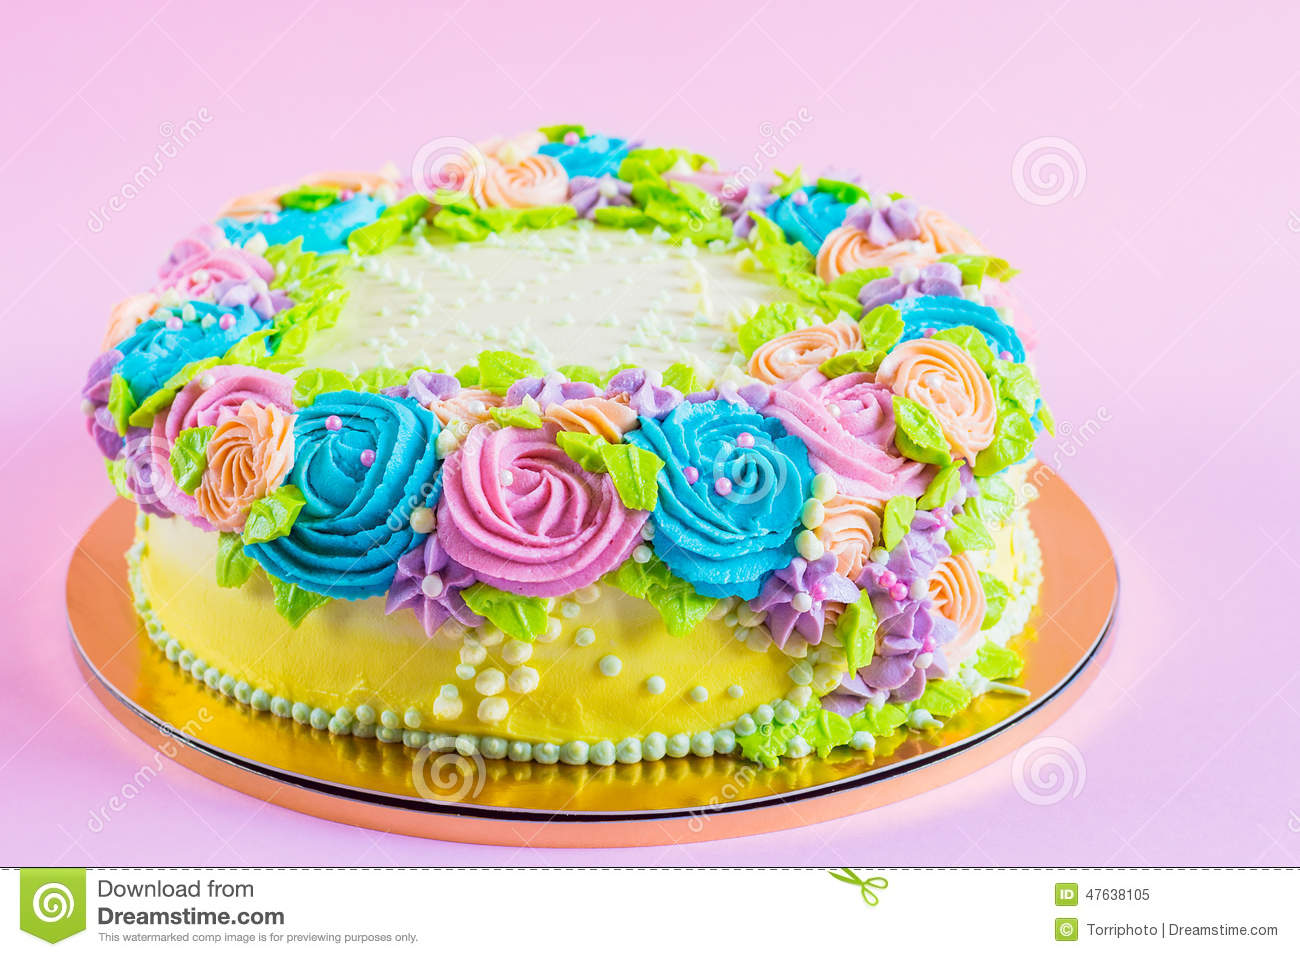 Bright Colorful Cake Decorated With Cream Flowers Stock